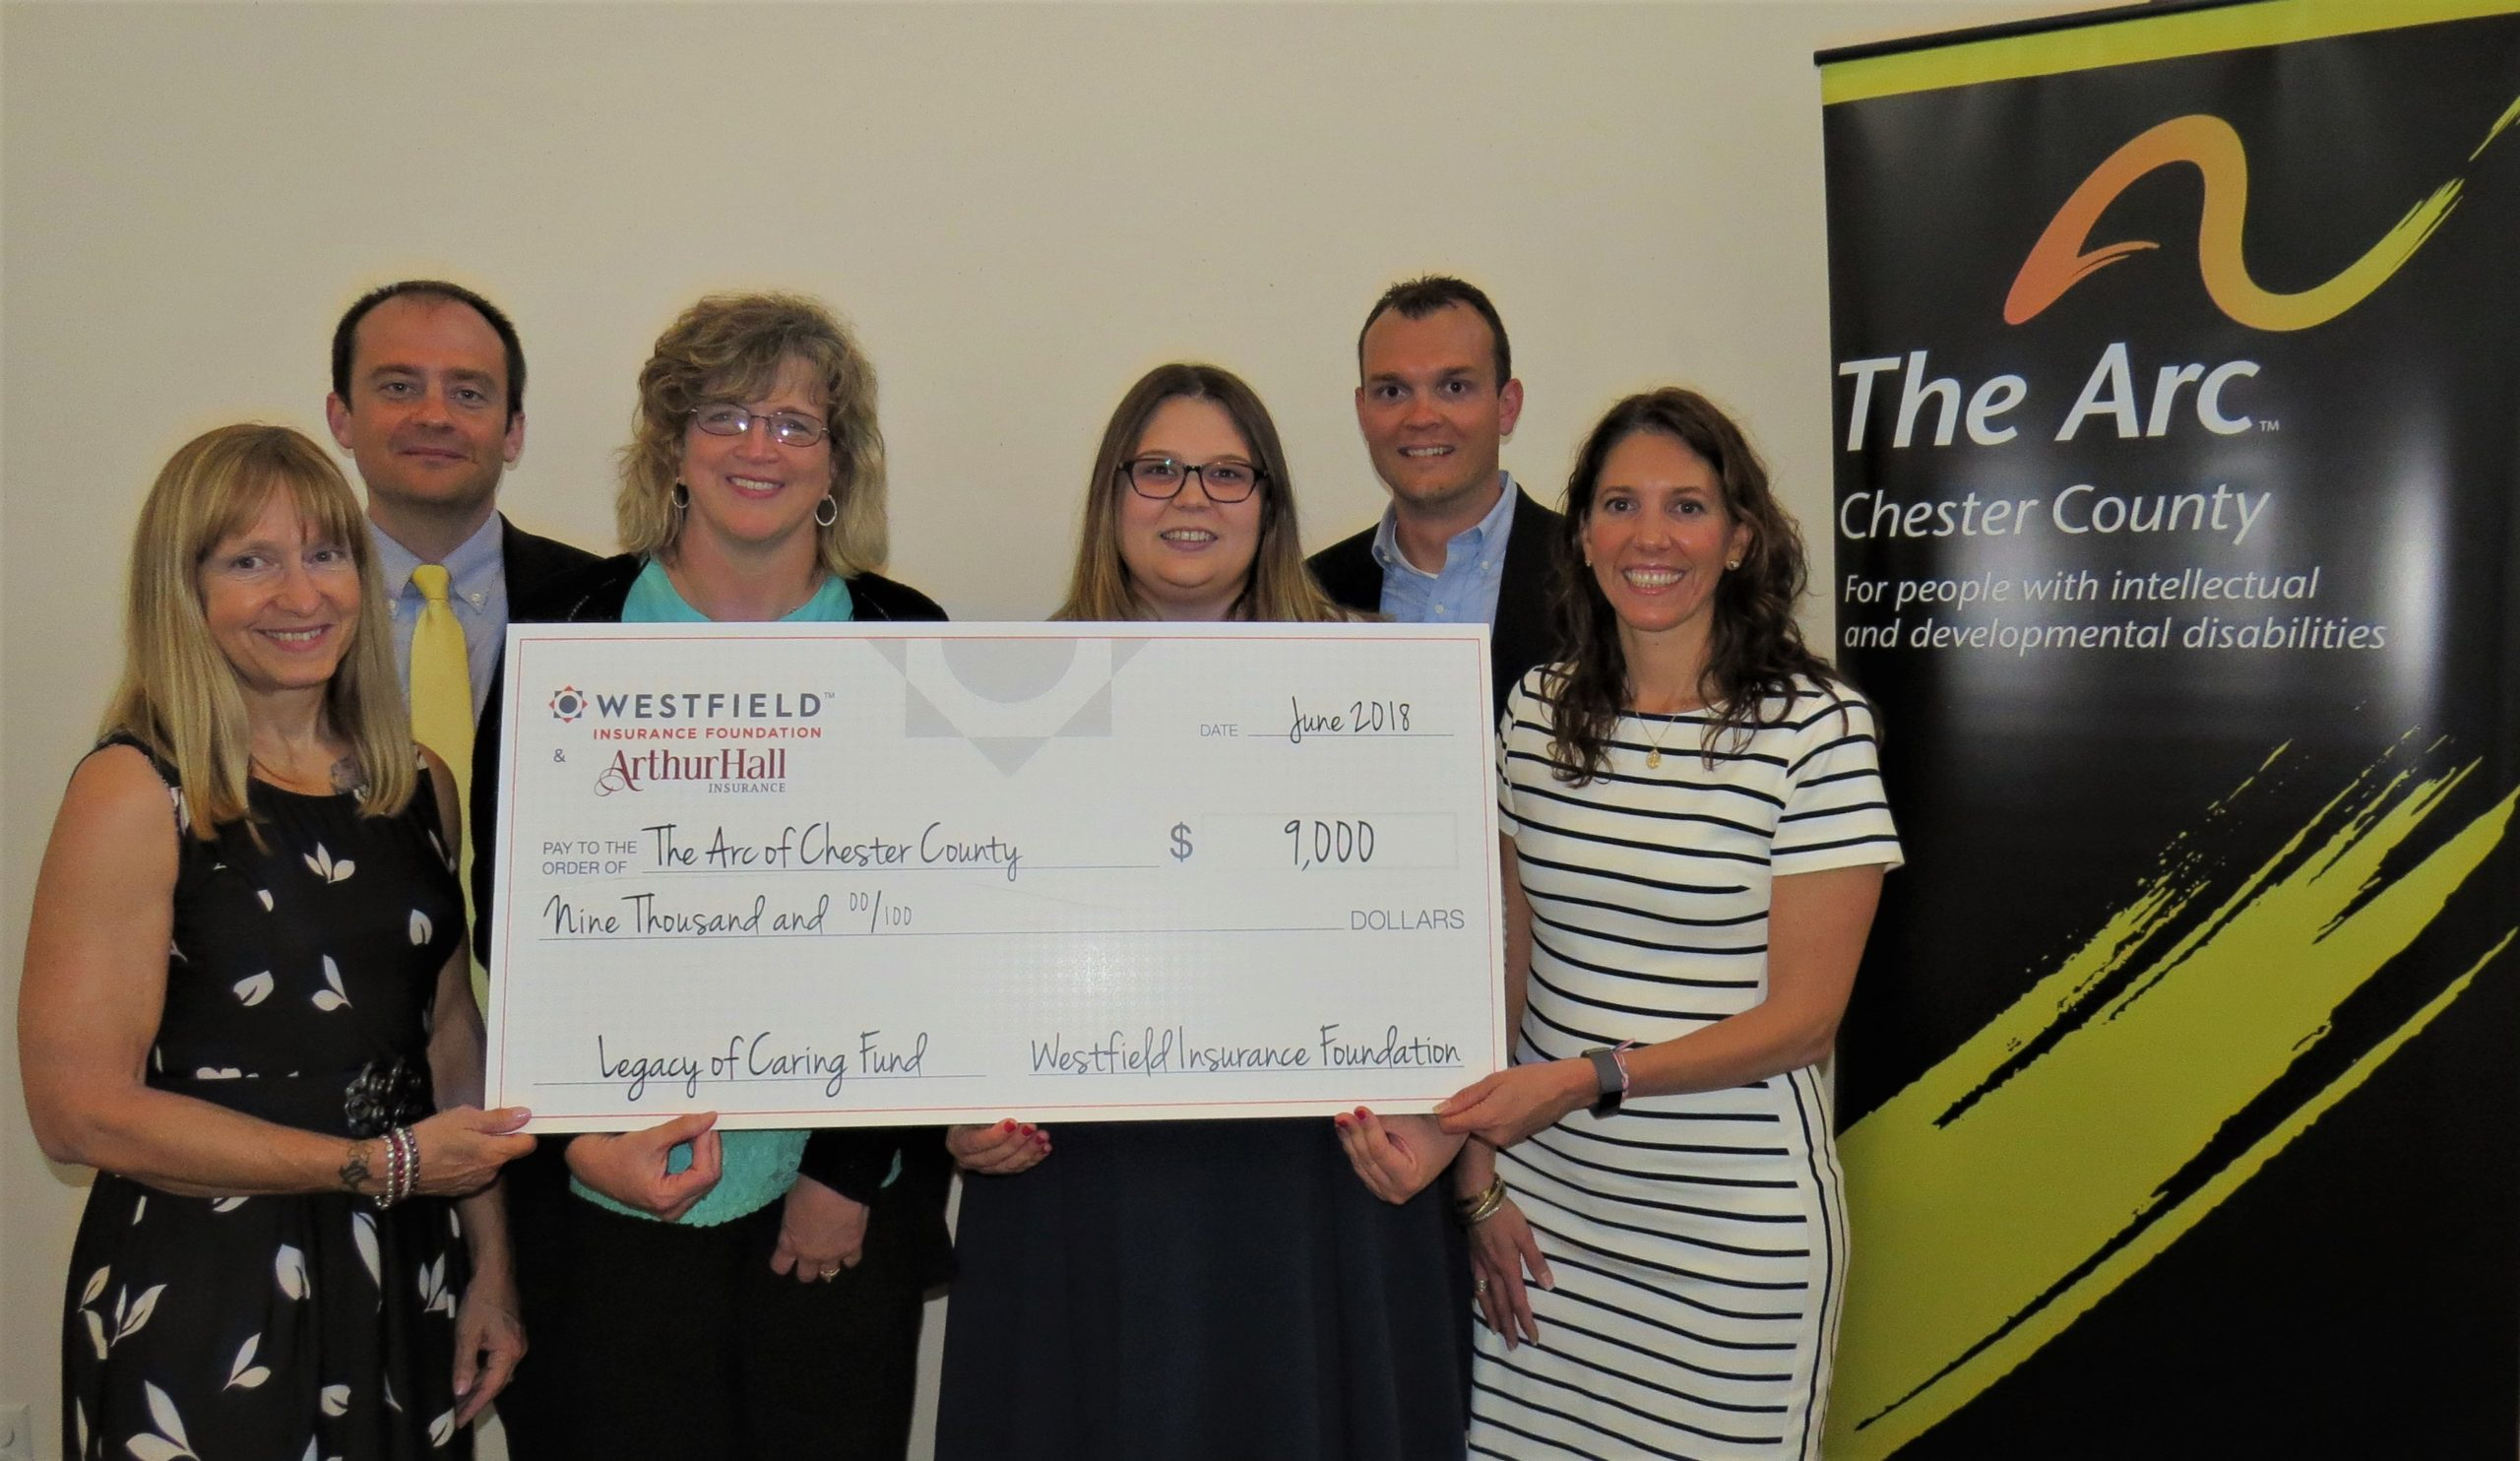 Arc of Chester County Receives Grant from Arthur Hall Insurance, Westfield Insurance Foundation